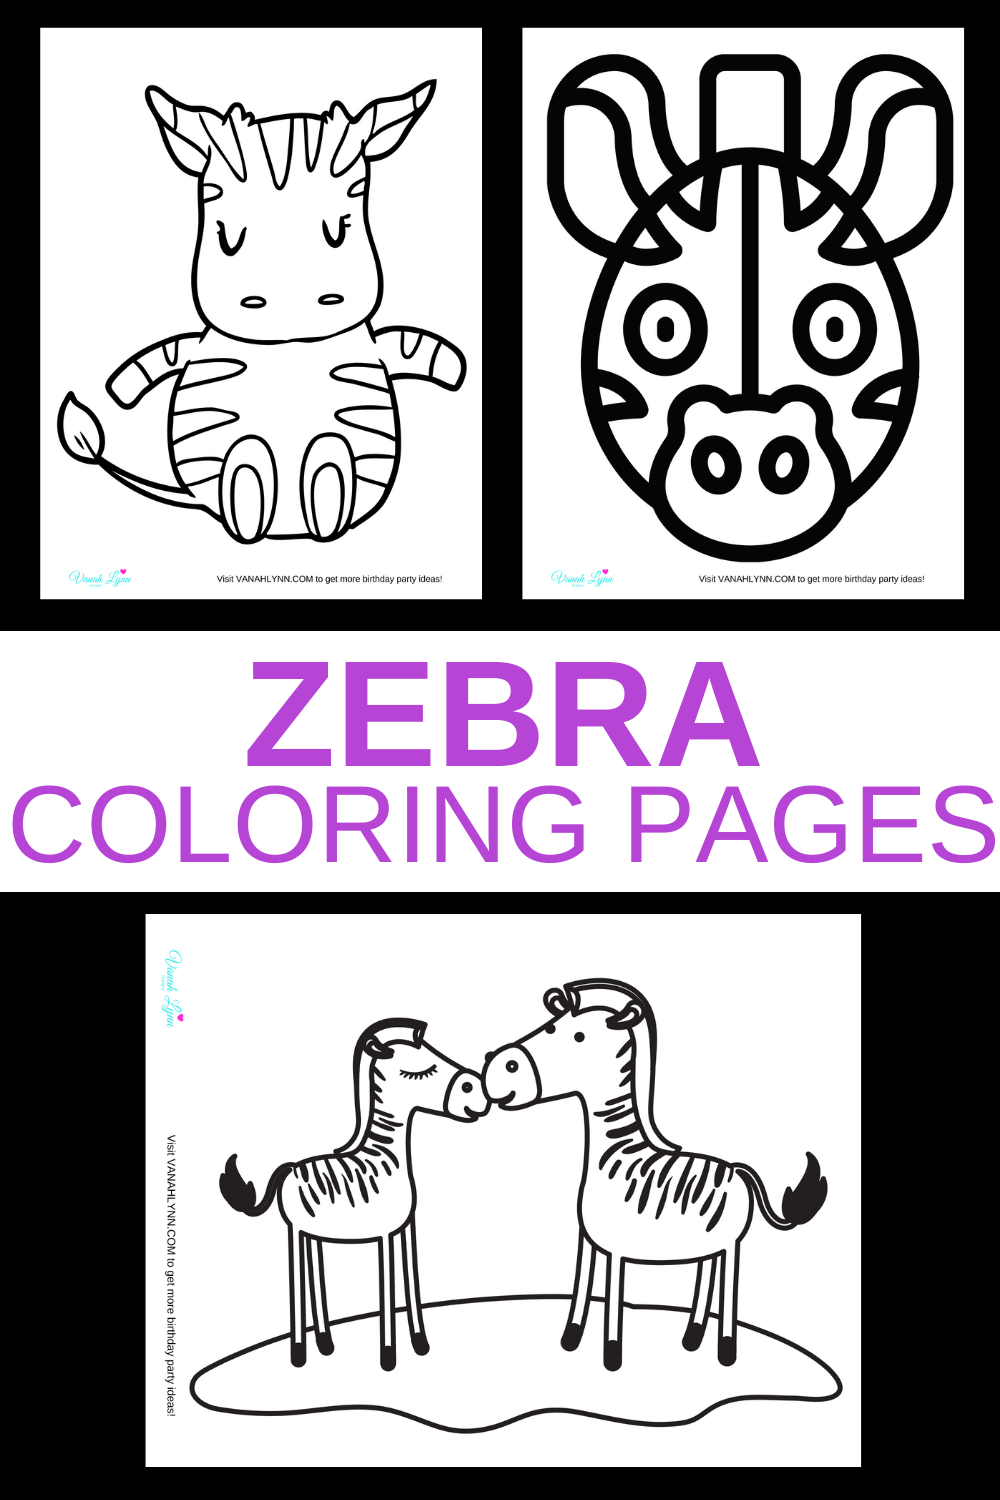 free download: zebra activity sheets for toddlers